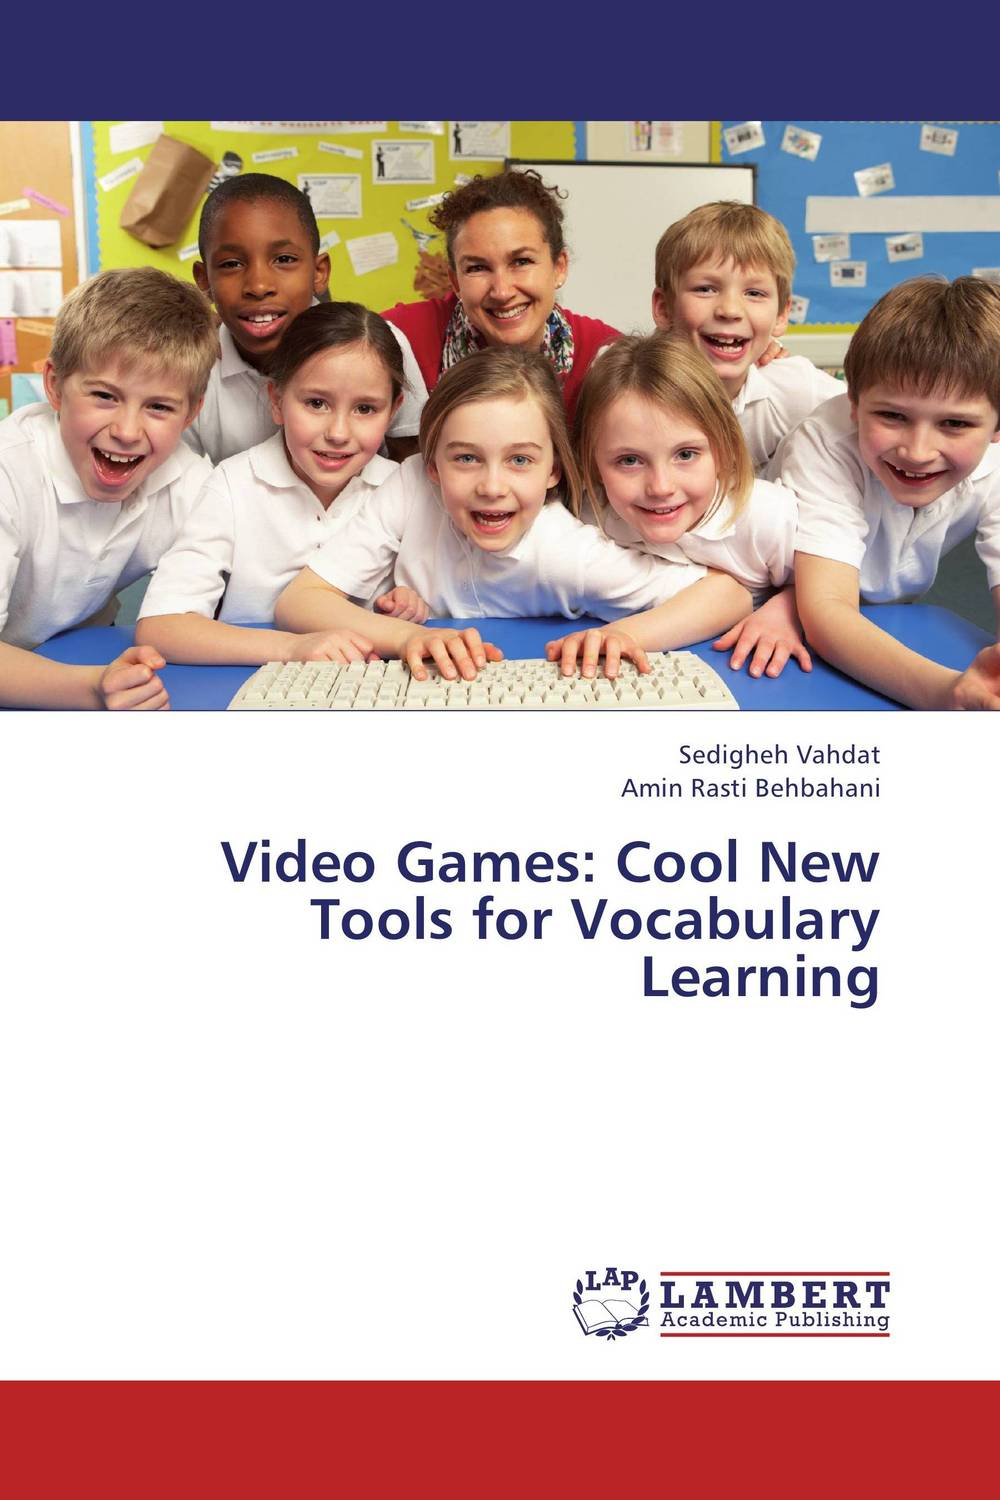 Video Games: Cool New Tools for Vocabulary Learning video games